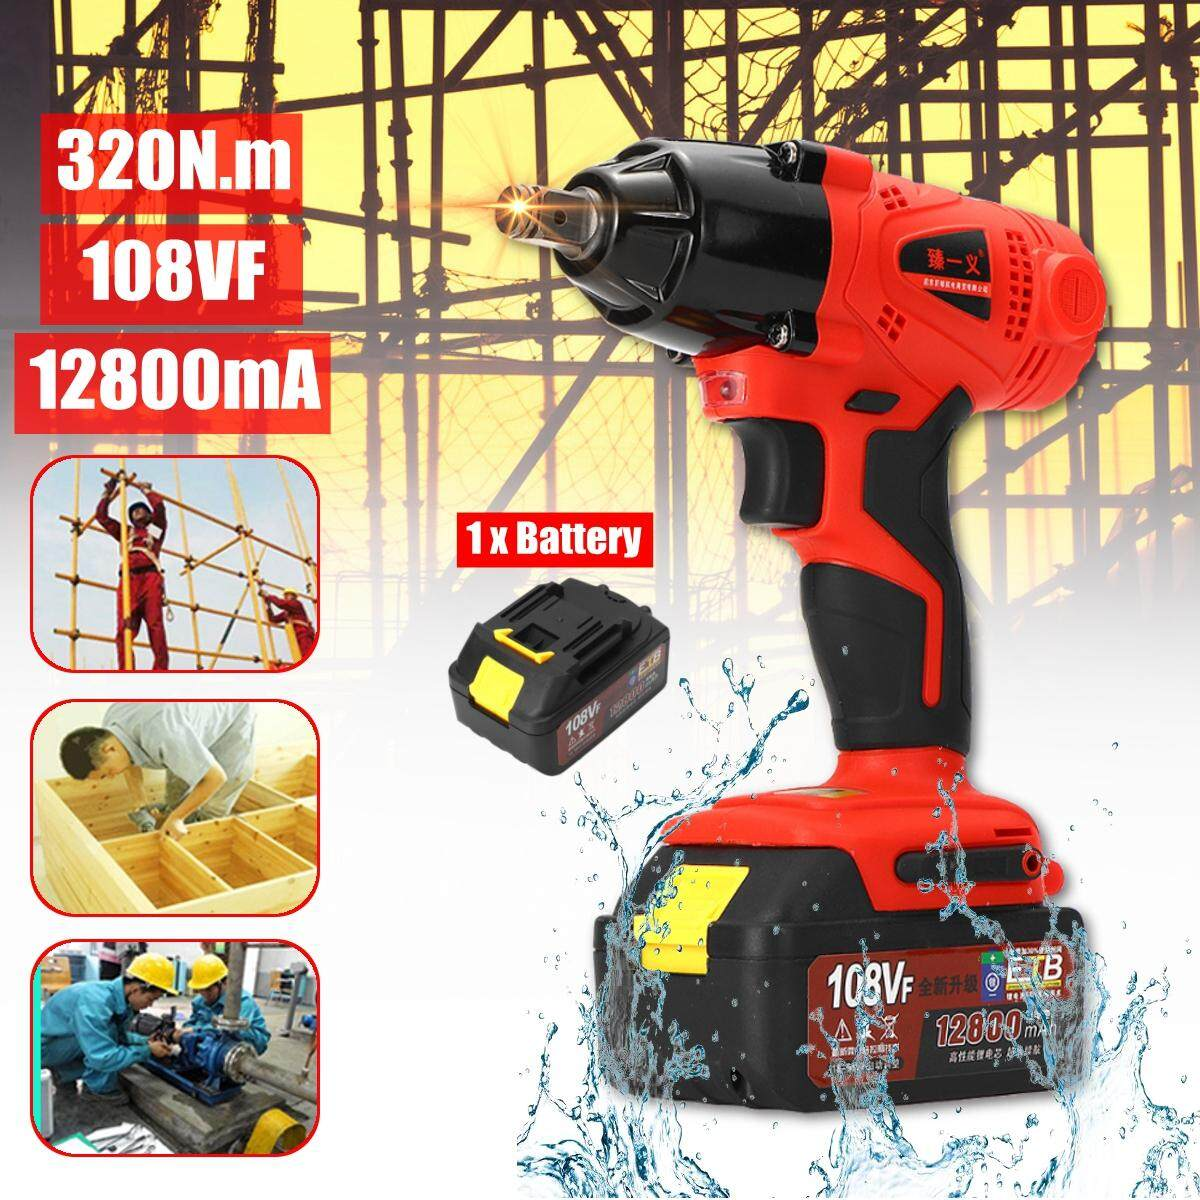 108VF 12800mAh Brushless Cordless Impact Wrench Torque Drill Tool